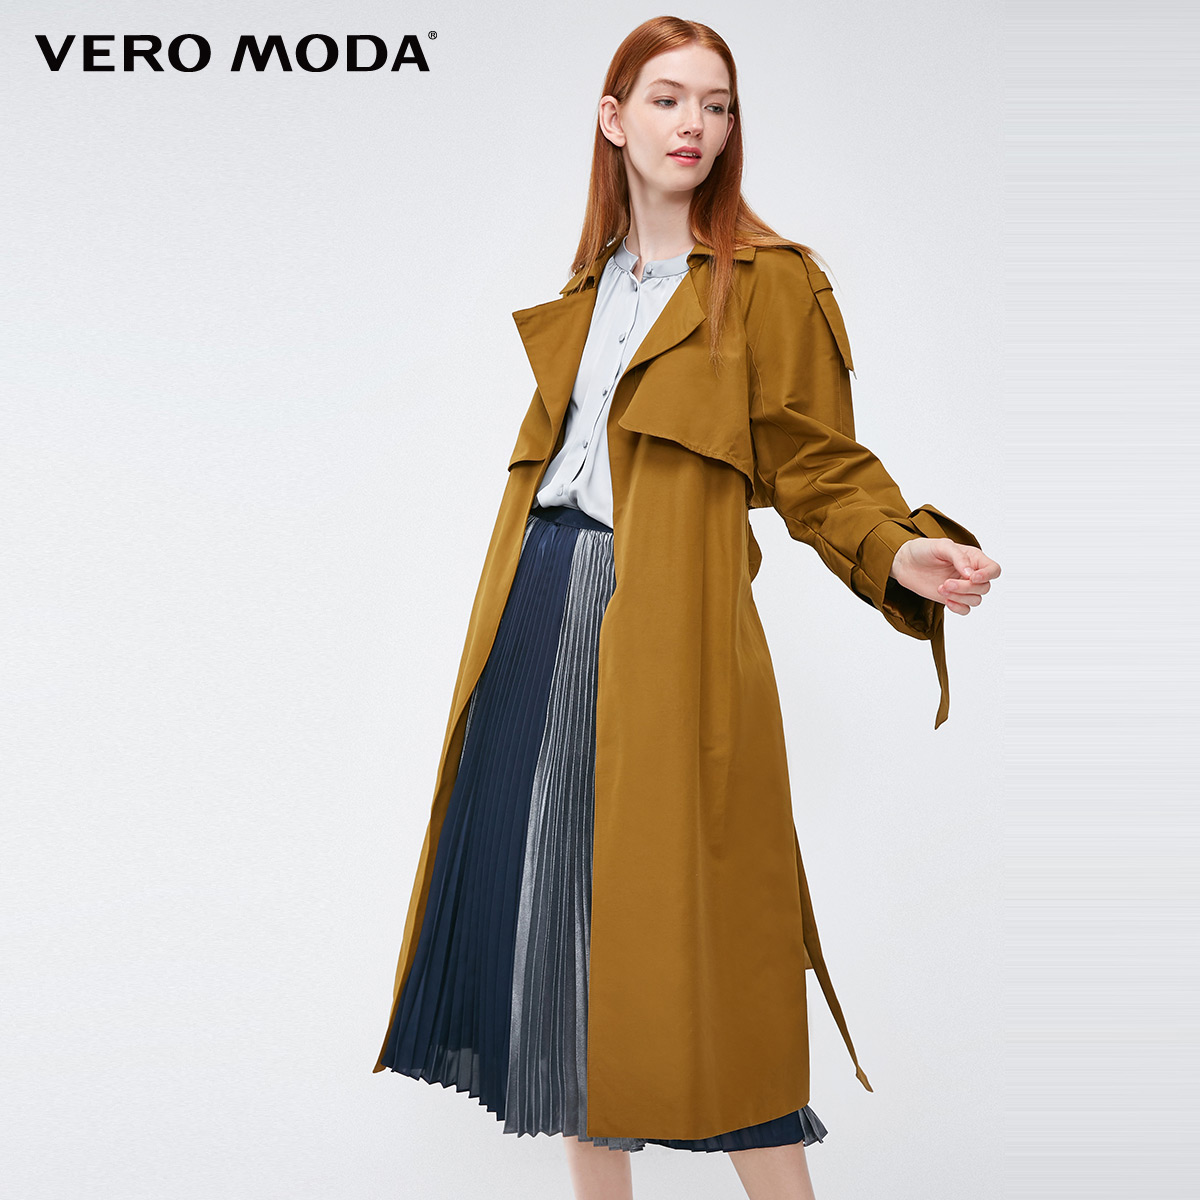 Vero Moda 2019 new windshield design cuffs decorated long   trench   coat | 318321508